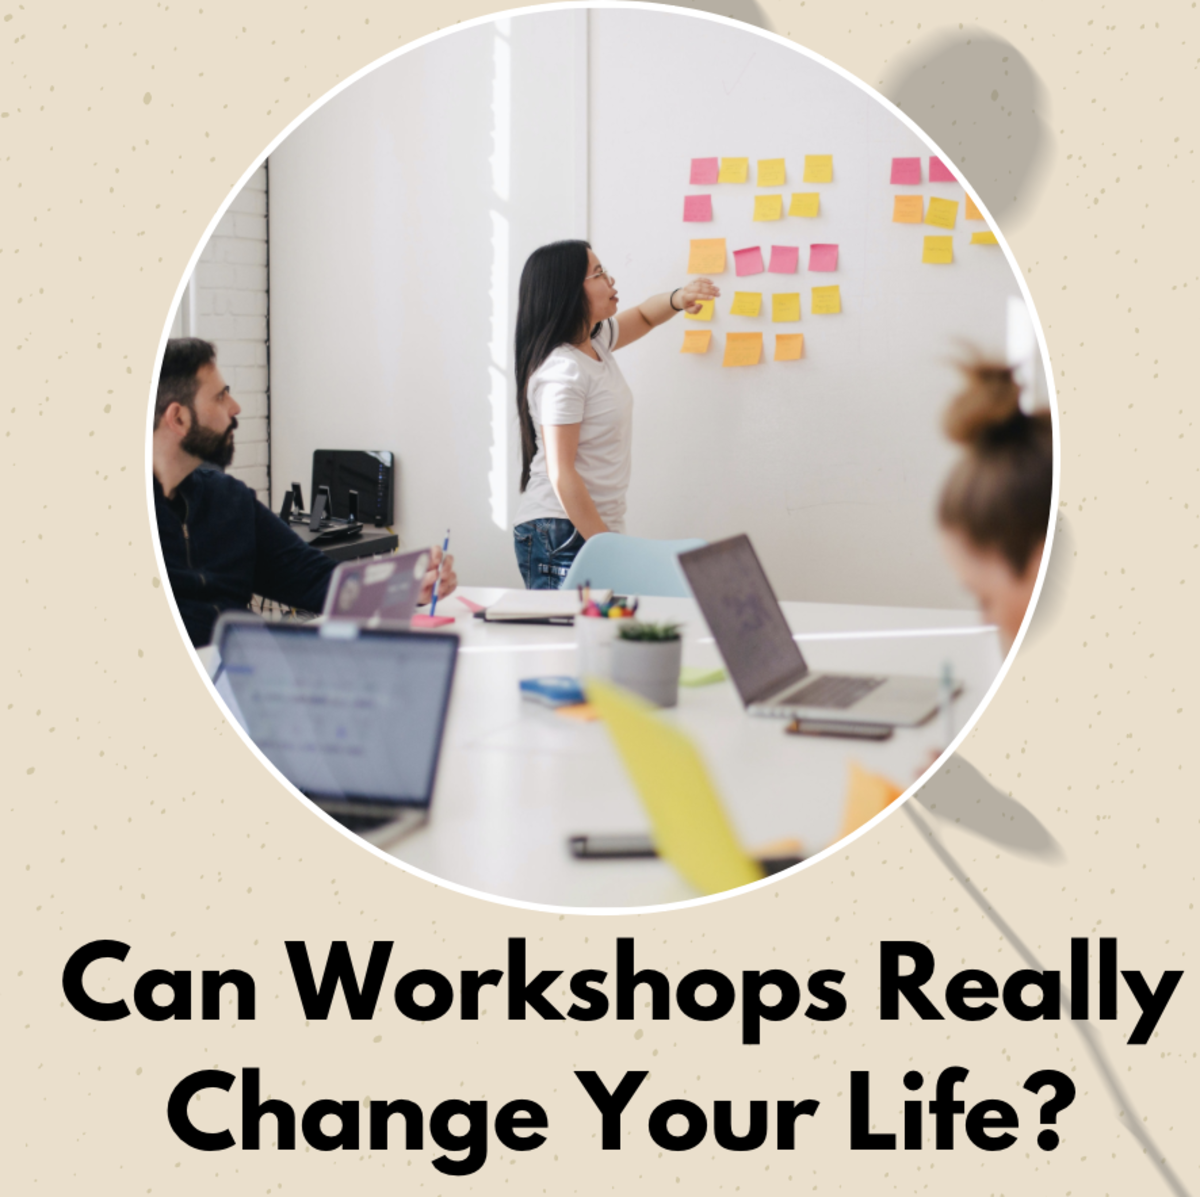 Read on to see what effect workshops really have on employees.